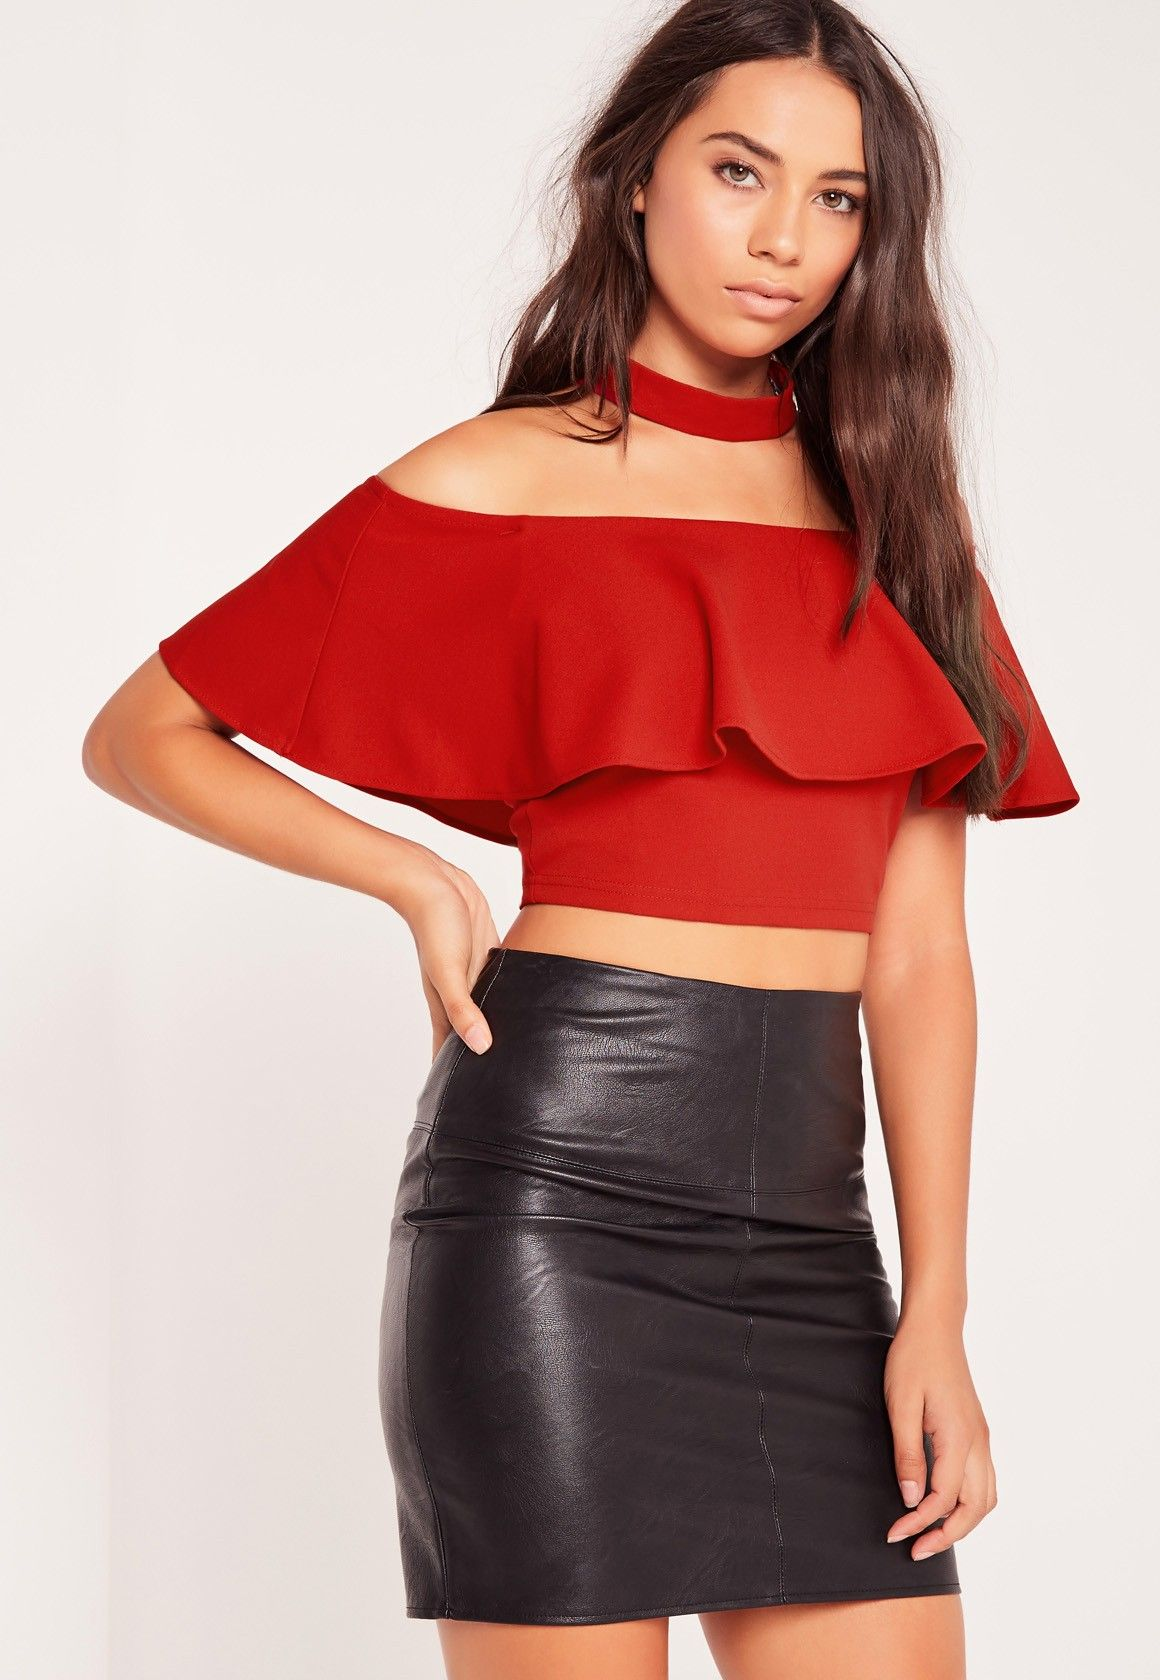 501787a8a88 Missguided - Choker Neck Frill Bardot Crop Top Red | Tops | Bardot ...